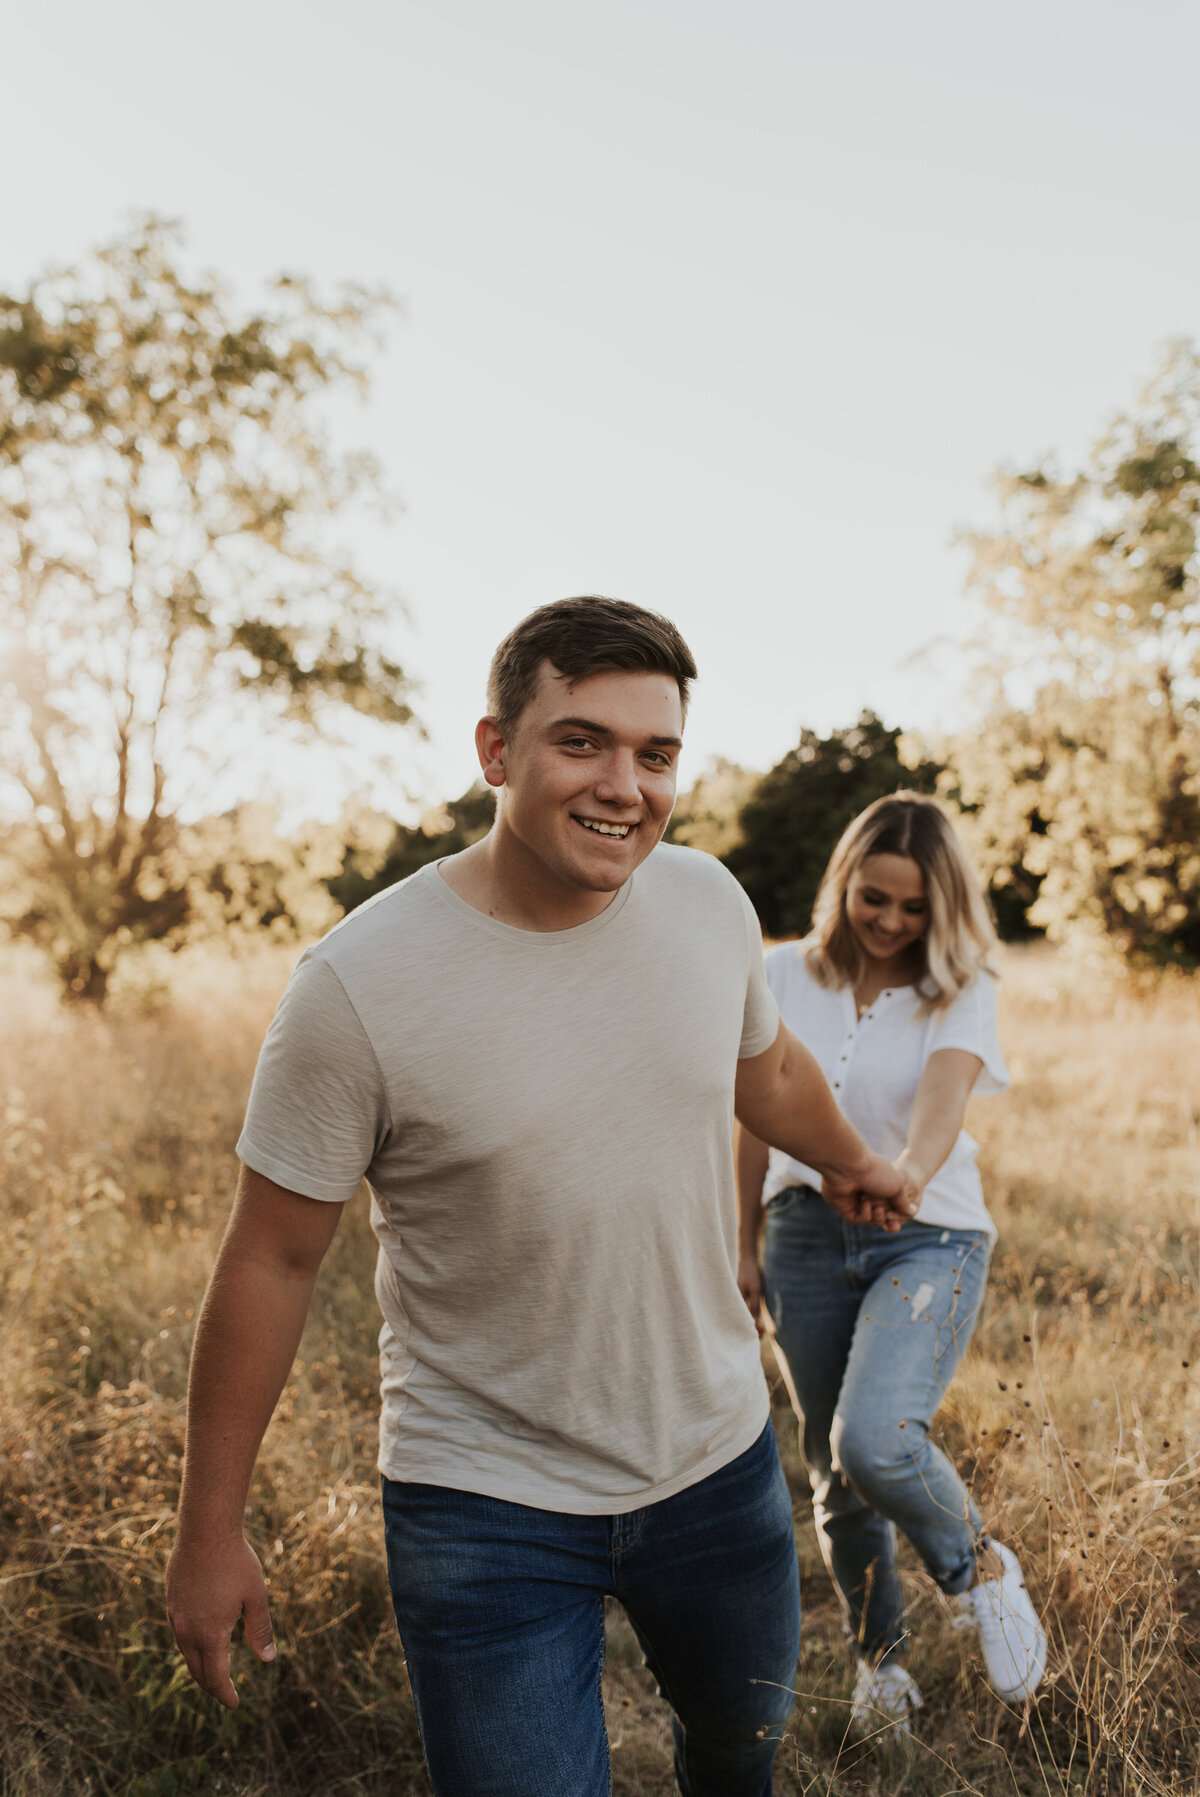 Jess-and-sam-couples-session-arbor-hills-dallas-texas-by-bruna-kitchen-photography-30